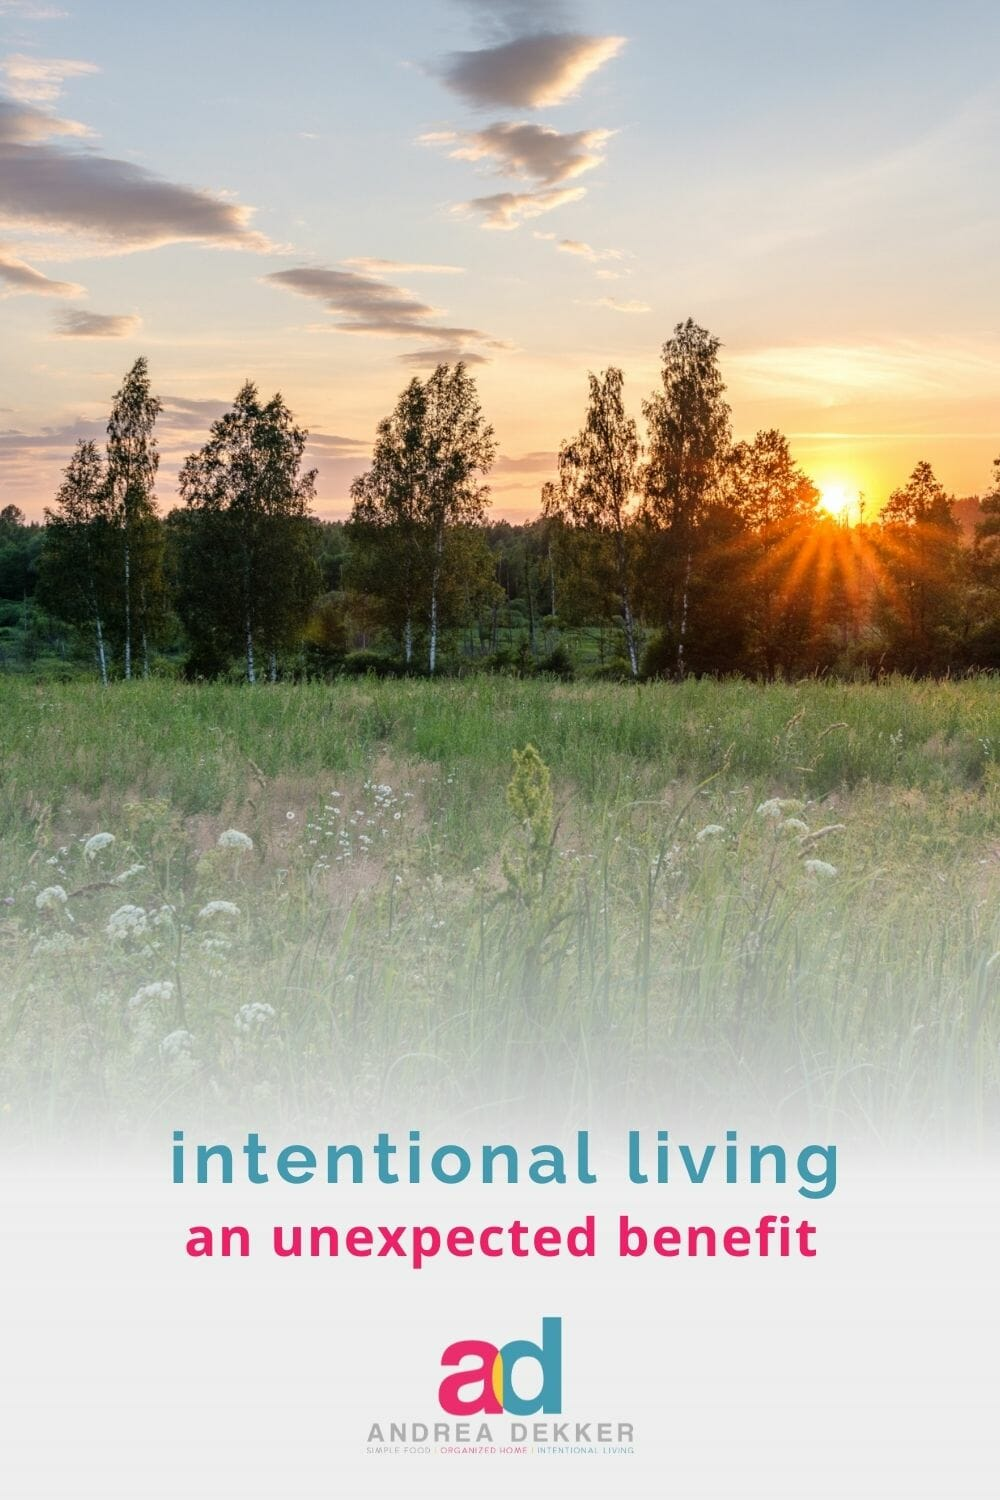 Ironically enough, one of my favorite benefits of living a simpler, slower, more intentional lifestyle is also a completely unexpected benefit. via @andreadekker